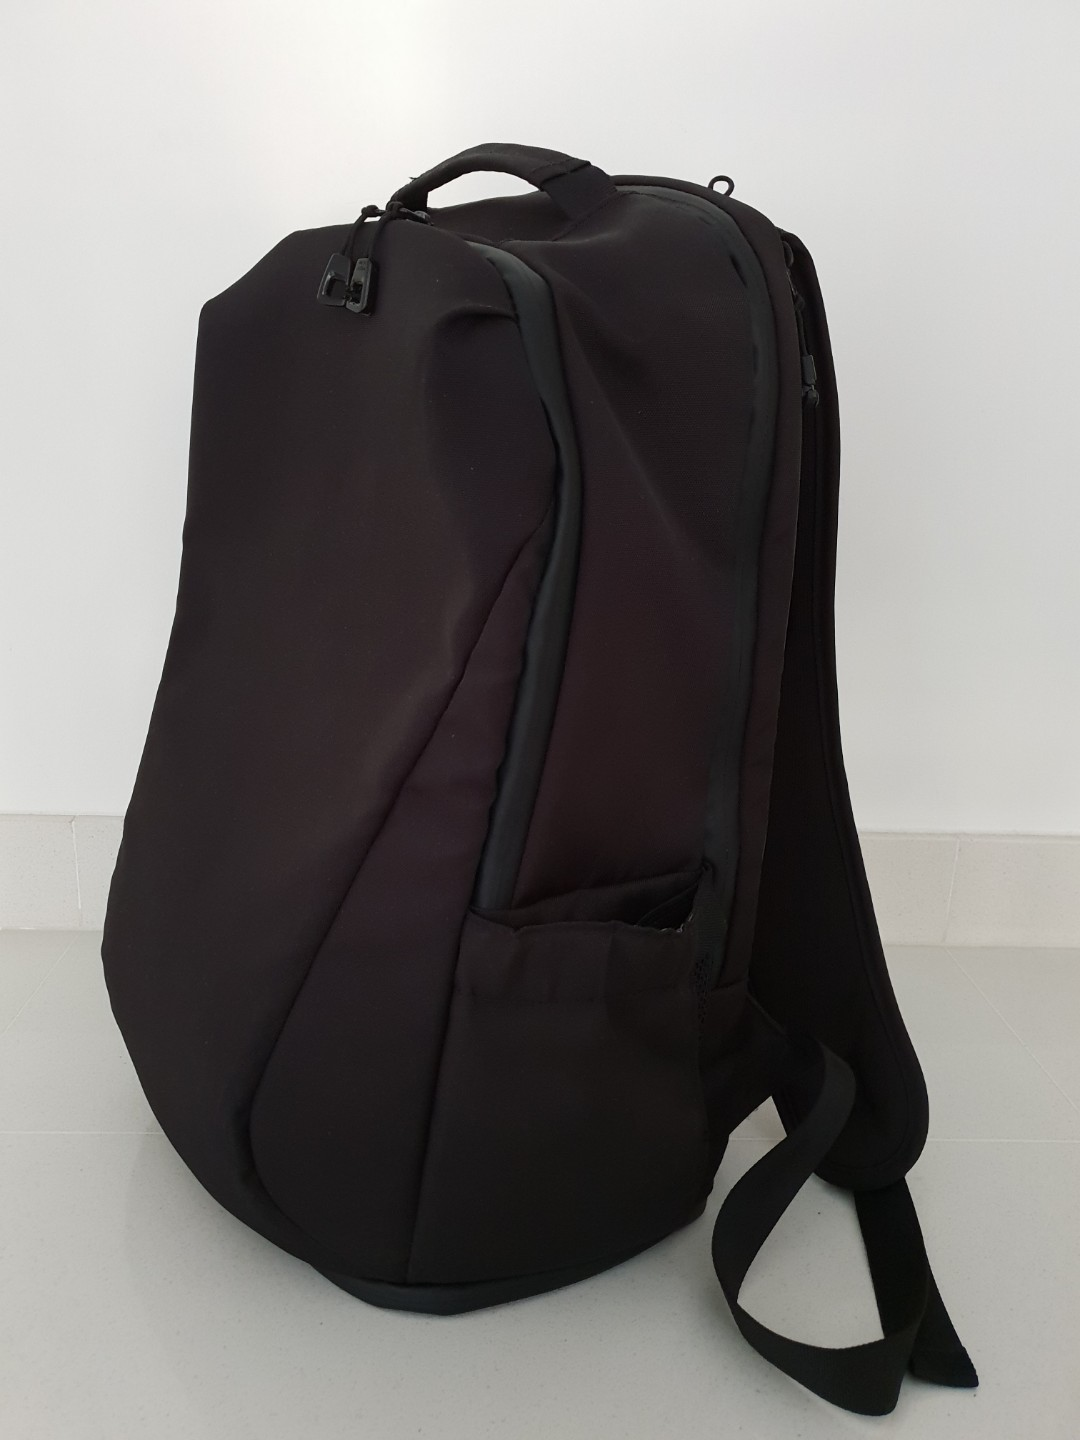 c4f70dc296 Ares Backpack - Work   Gym   Exercise